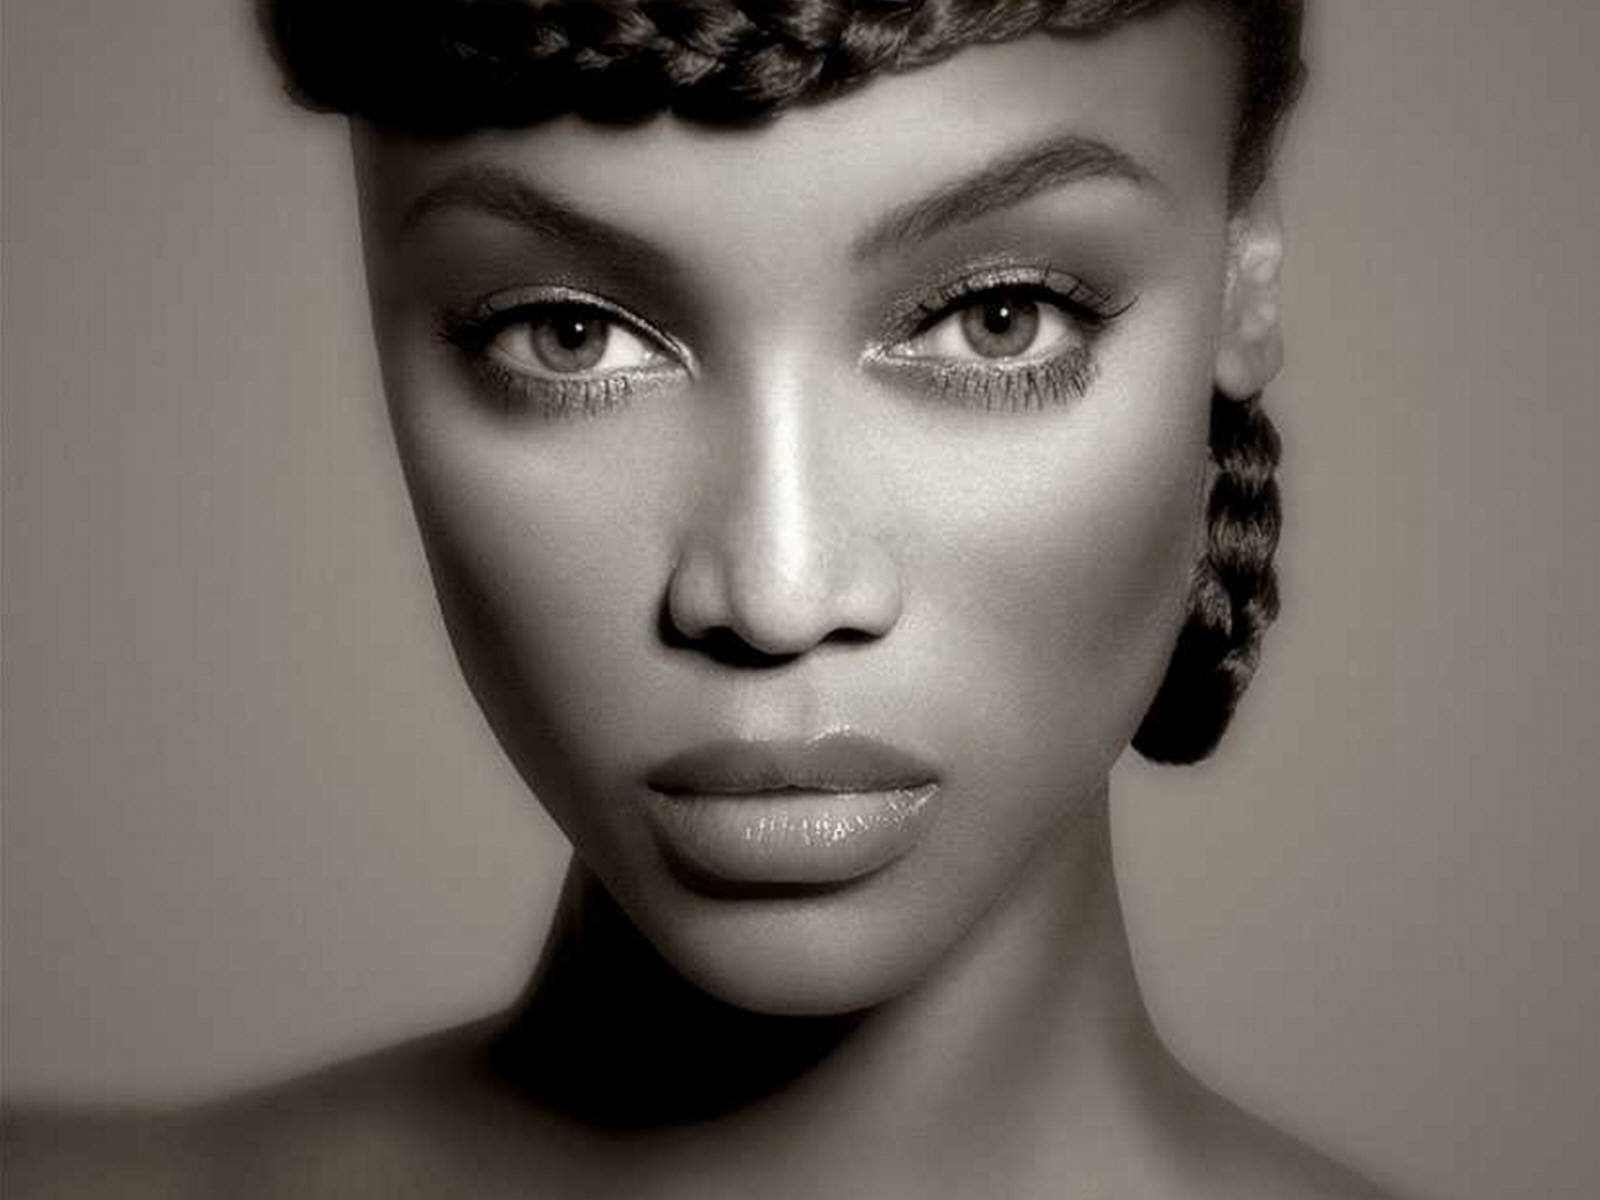 tyra-banks-picture_121940410.jpg